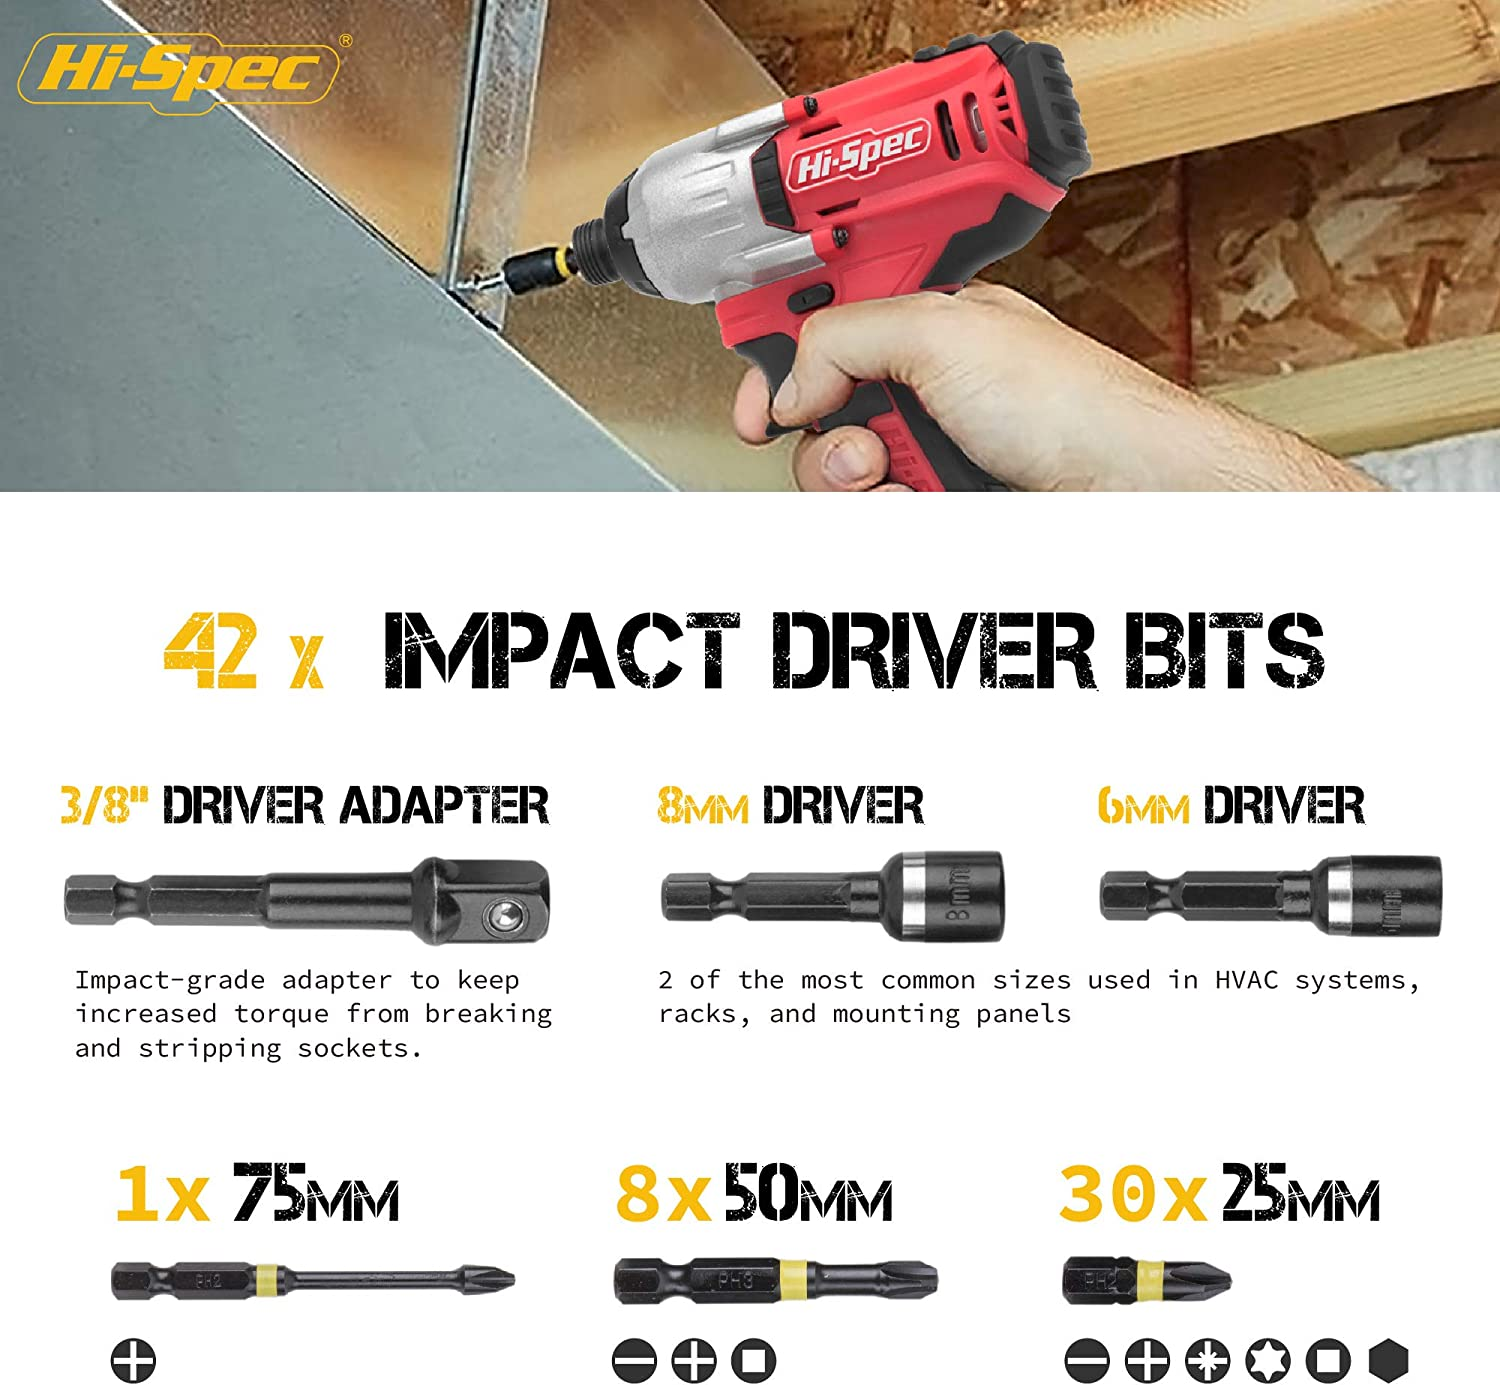 """Screwing /& Fastening Drill Driver Power Tool Accessories for DIY Repairs Installing Fixtures /& Fittings Hi-Spec 43 Piece 1//4/""""Hex Shank Impact Driver Screw Bits Set"""